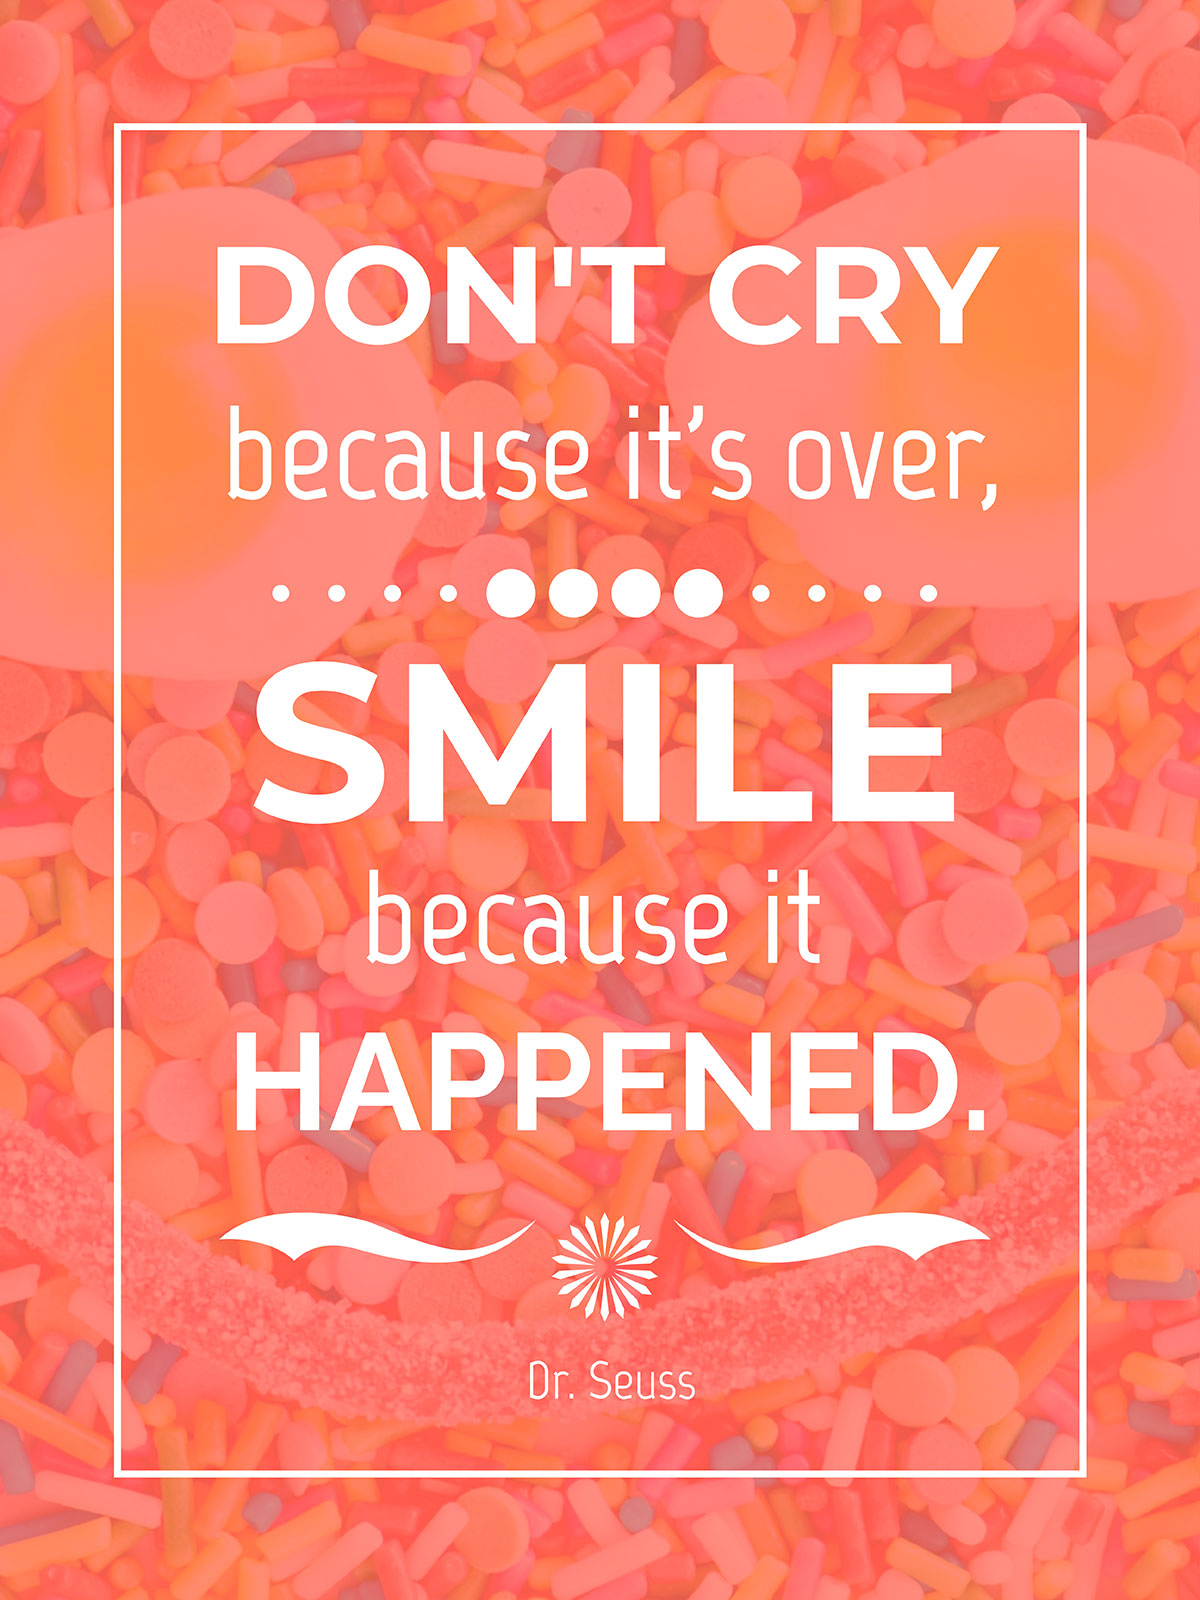 An example of a pink orange quote poster template from Visme.